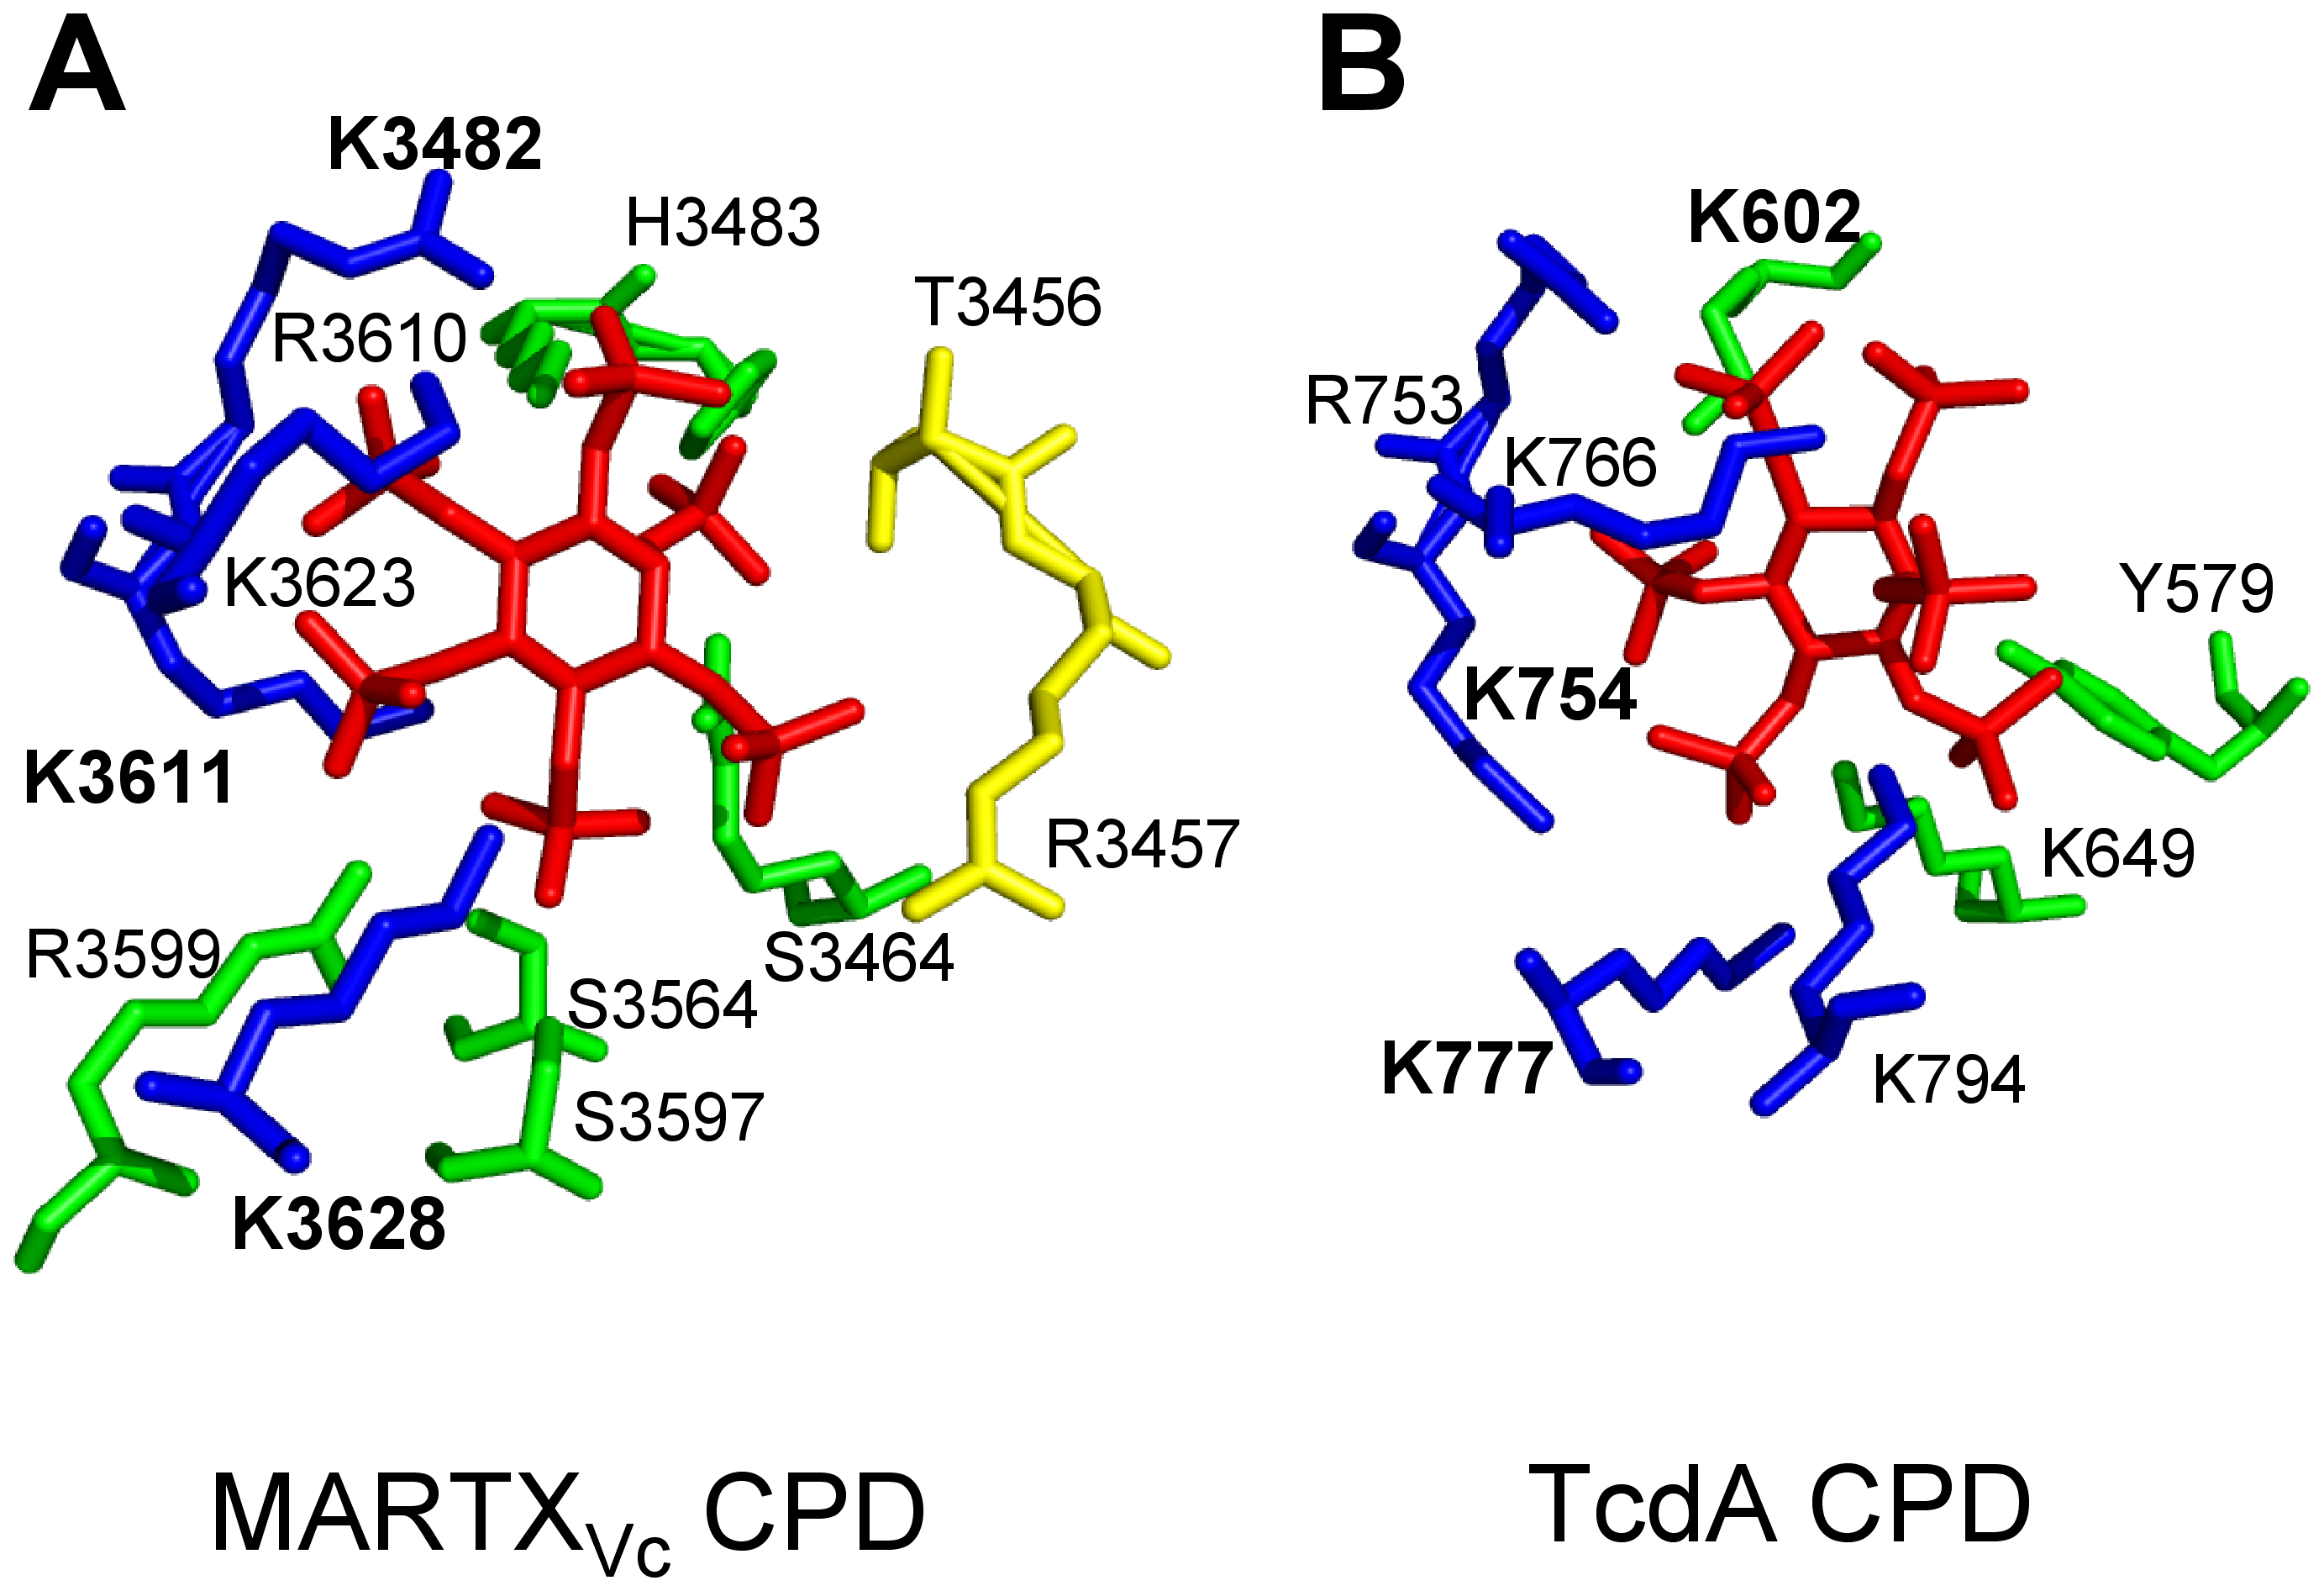 Side chain residues from CPD that contact InsP<sub>6</sub> in the structural models derived from crystal structures of MARTX<sub>Vc</sub> and TcdA CPD.